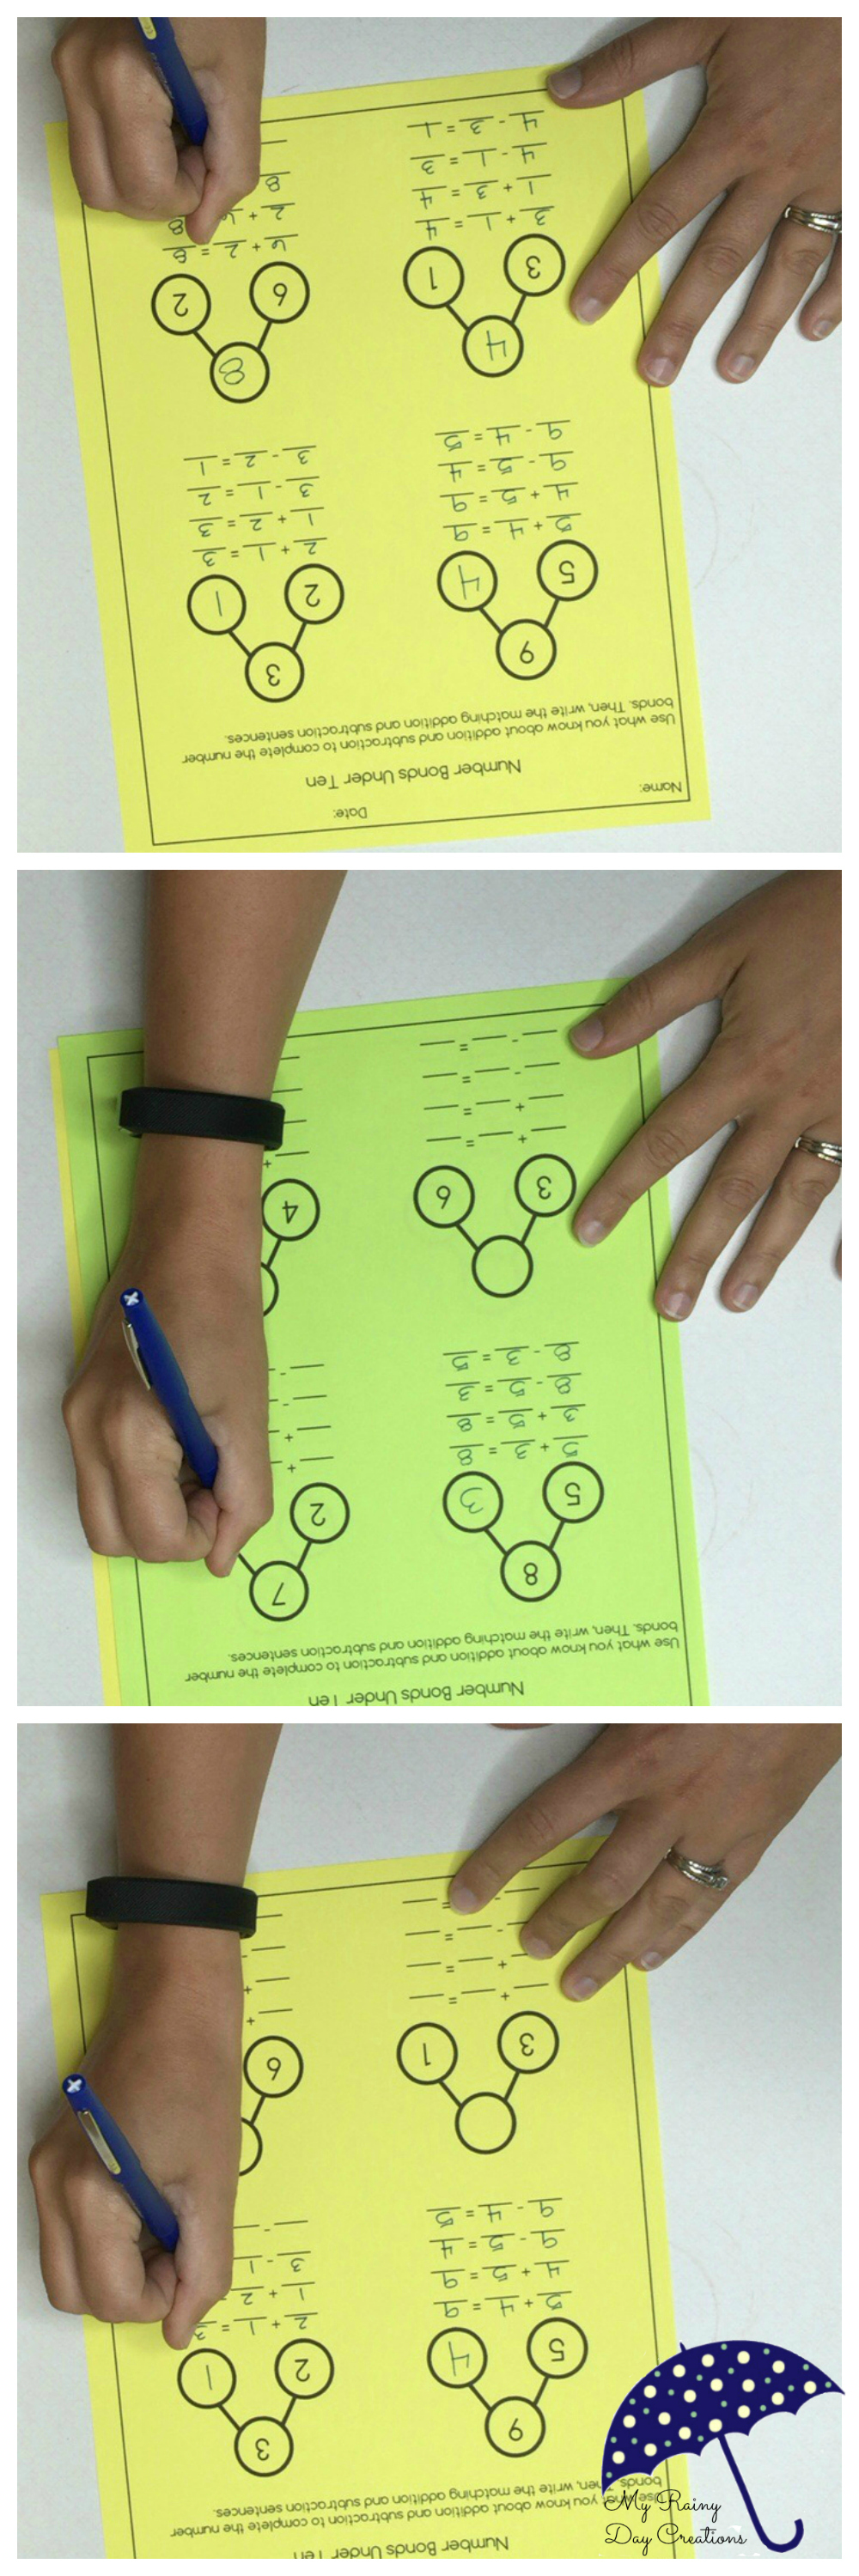 Kids Need To Practice Using Number Bonds To Get Comfortable With The Model These Two Free Wo Kindergarten Math Numbers Math Rotations Common Core Kindergarten [ 3000 x 1000 Pixel ]